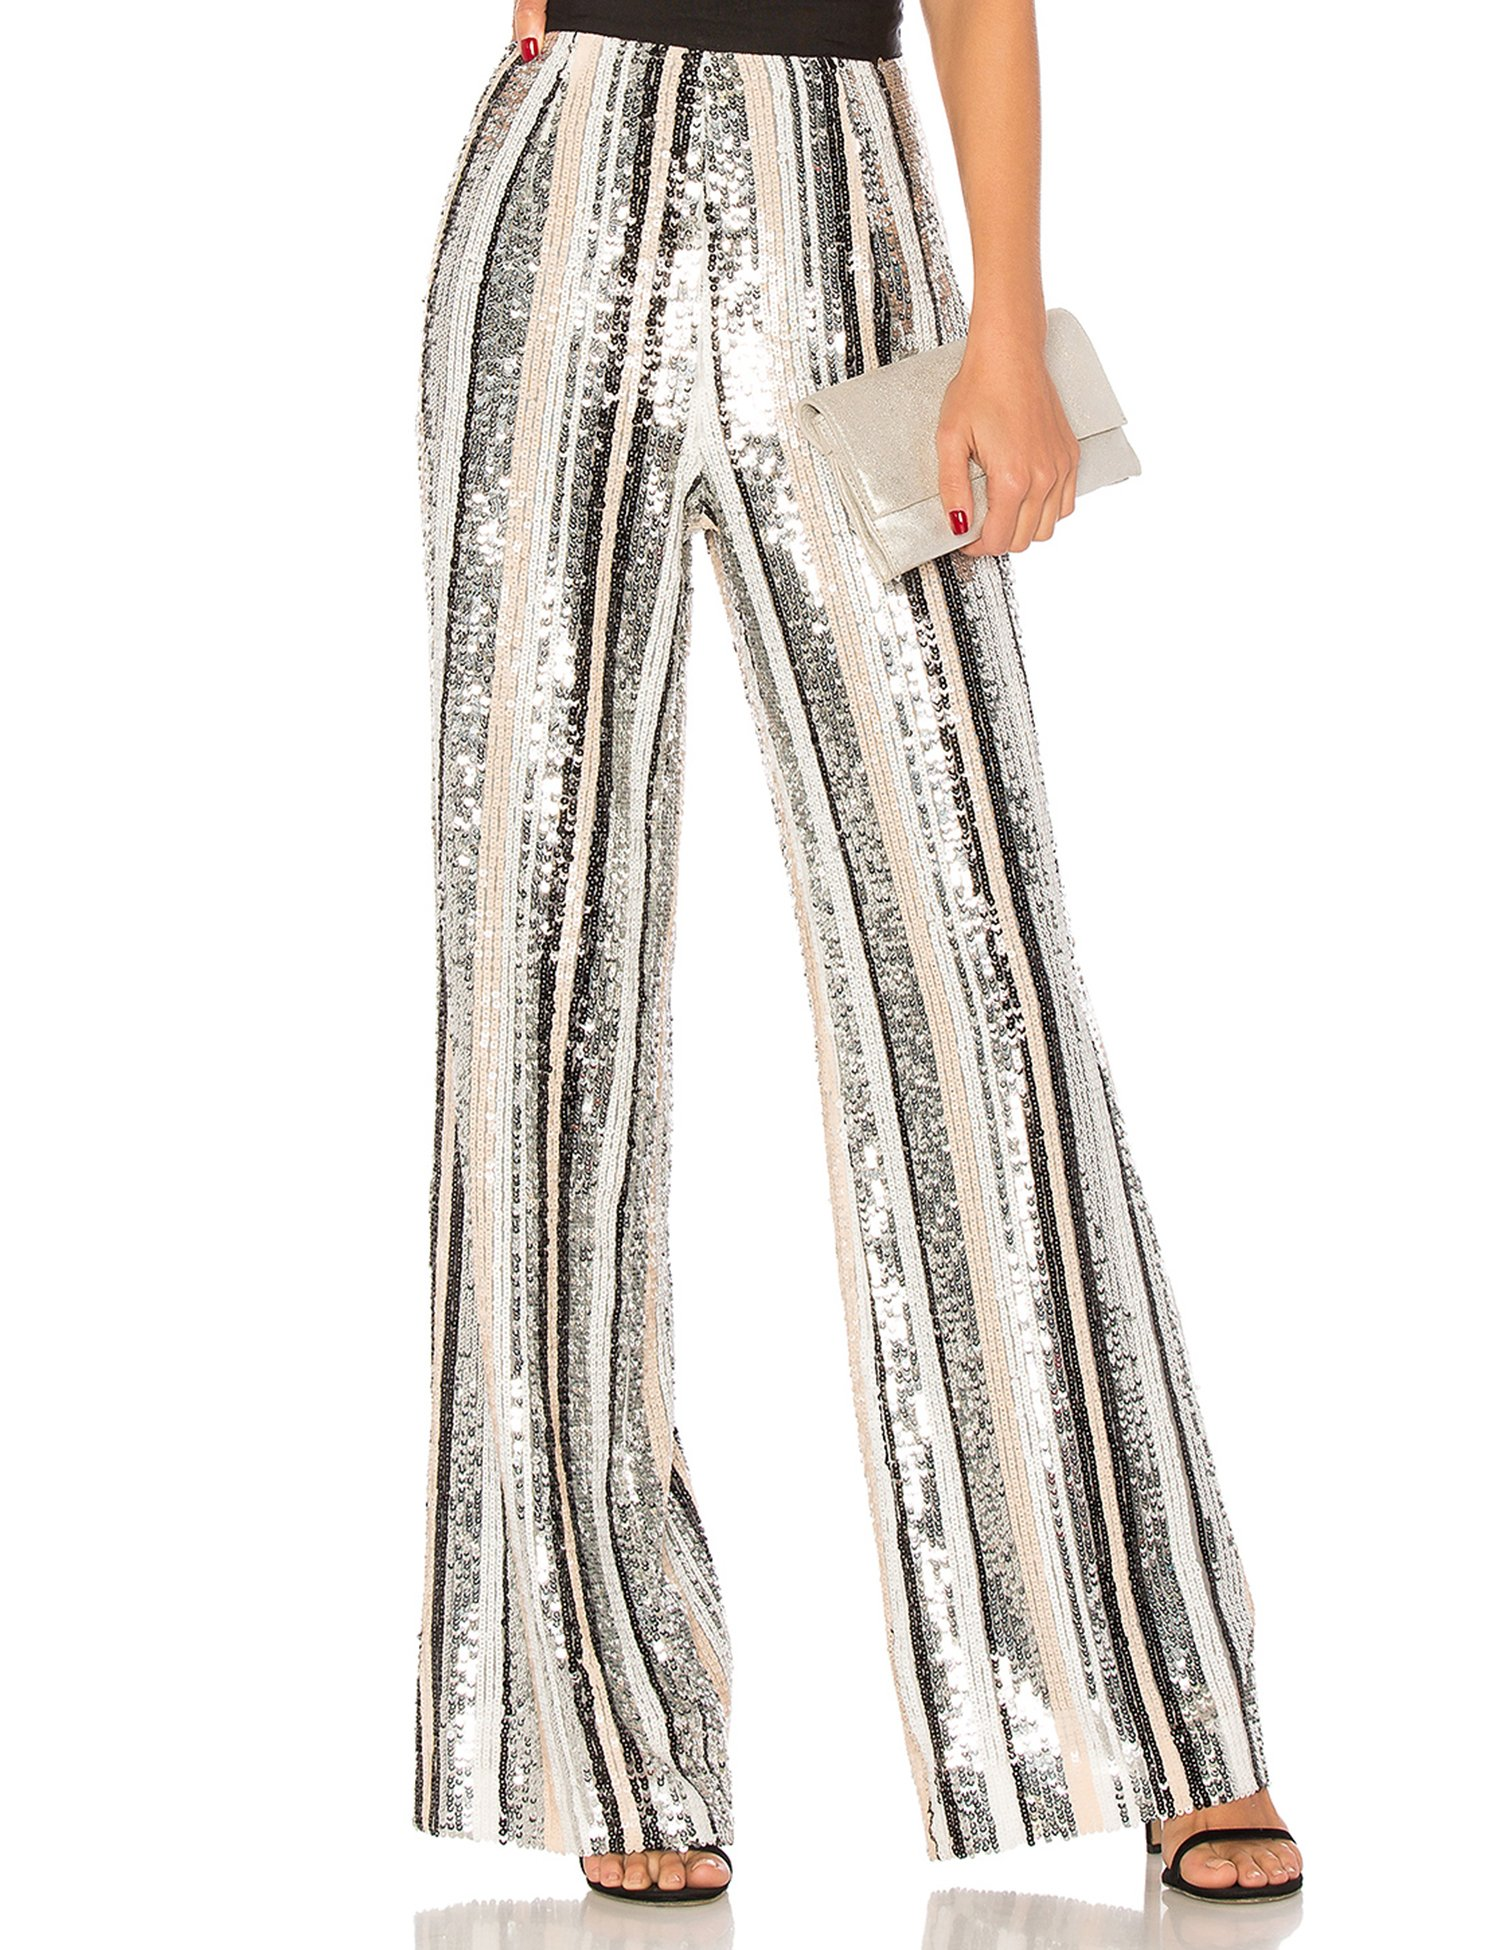 celeblink Women's Sequin Wide Leg Palazzo Pants with Fold Over Waist Band (Multicoloured, L)